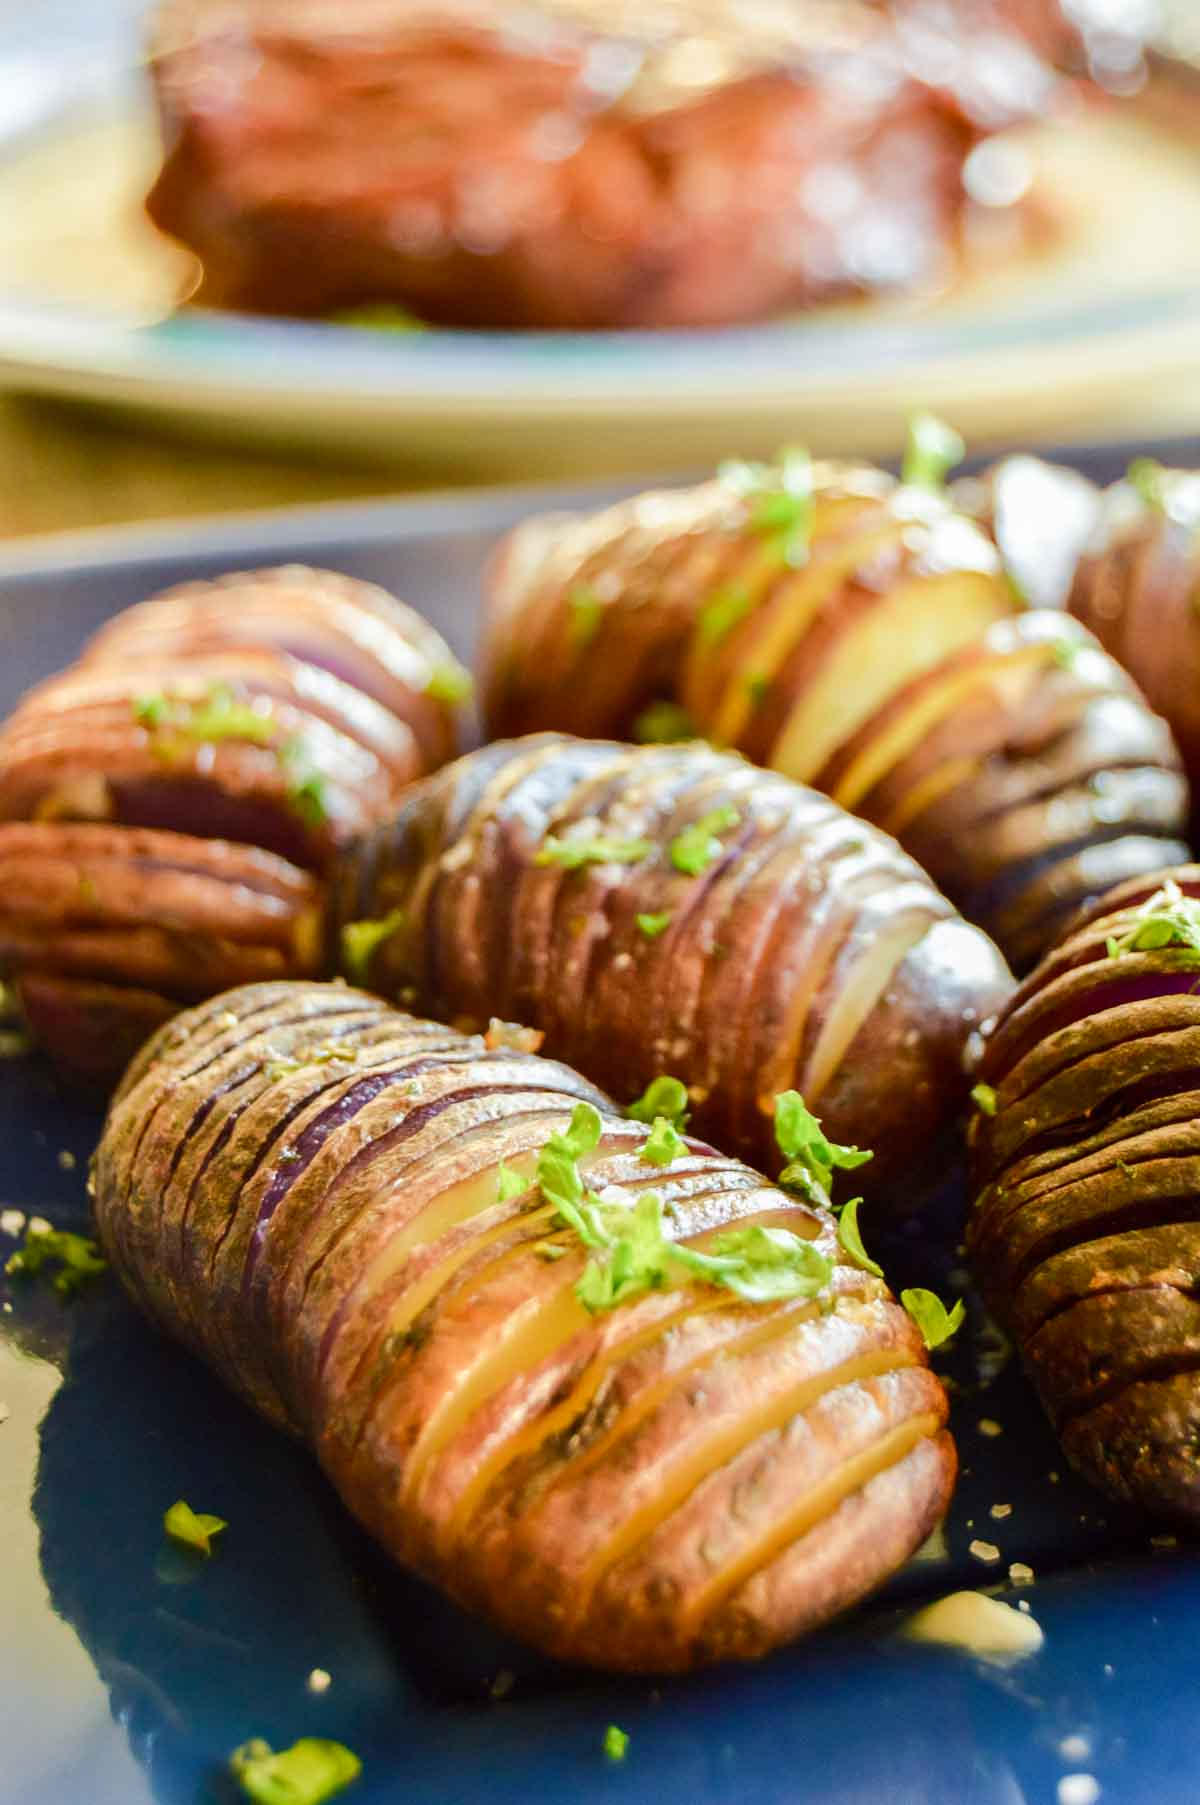 sliced hasselback potatoes with parsley on a blue plate